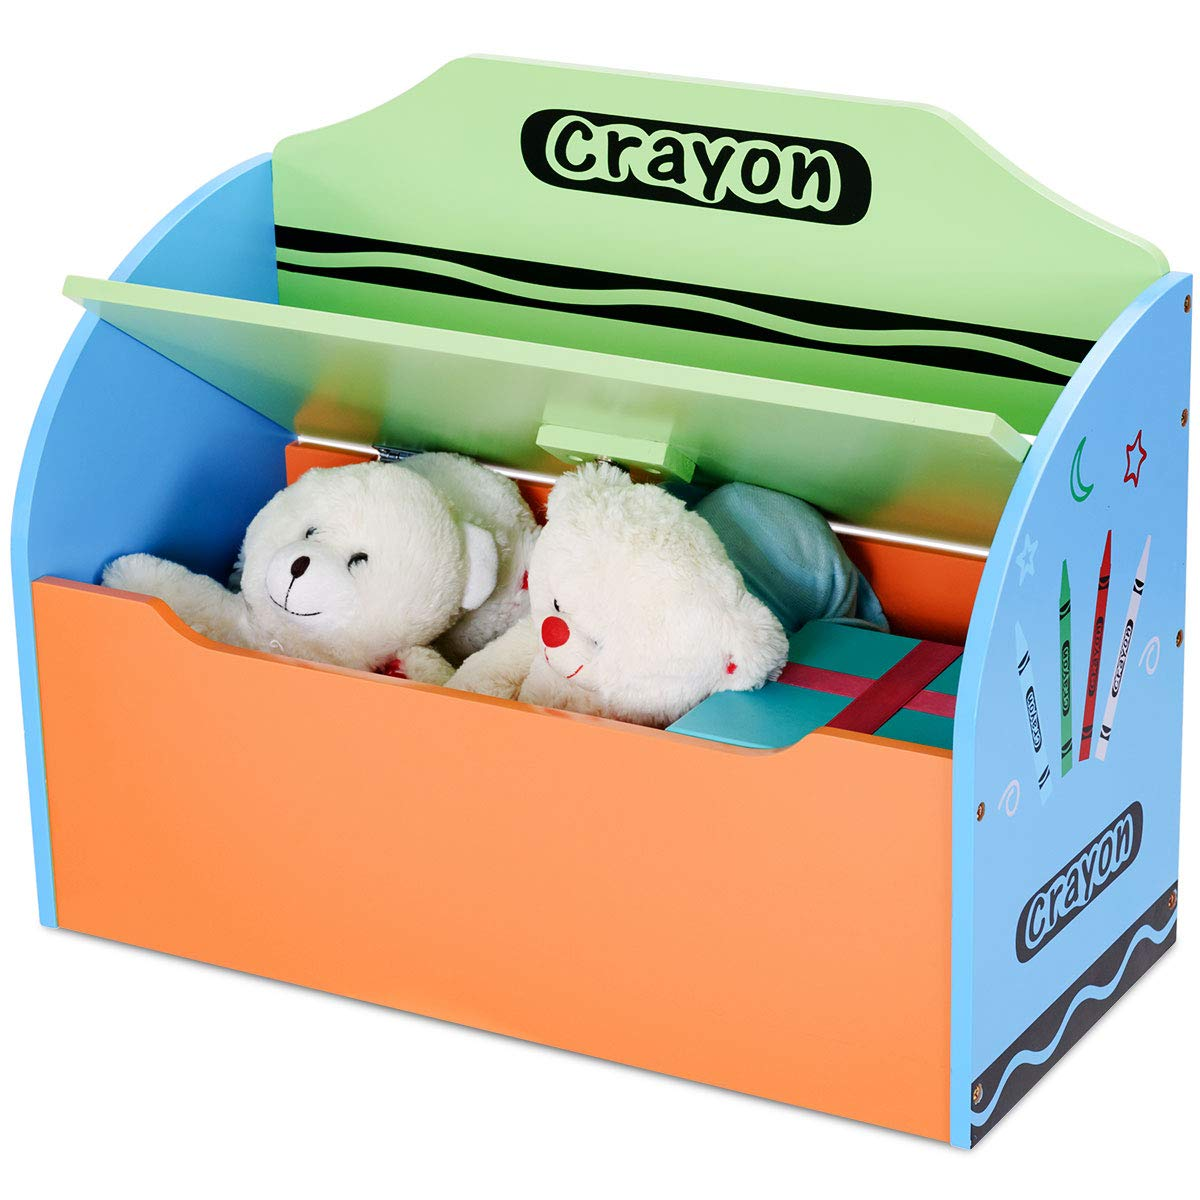 Costzon Toy Box, Wooden Toy Storage Chest Organizer, Entryway Storage Bench for Kids/ with Lid,Crayon Themed by Costzon